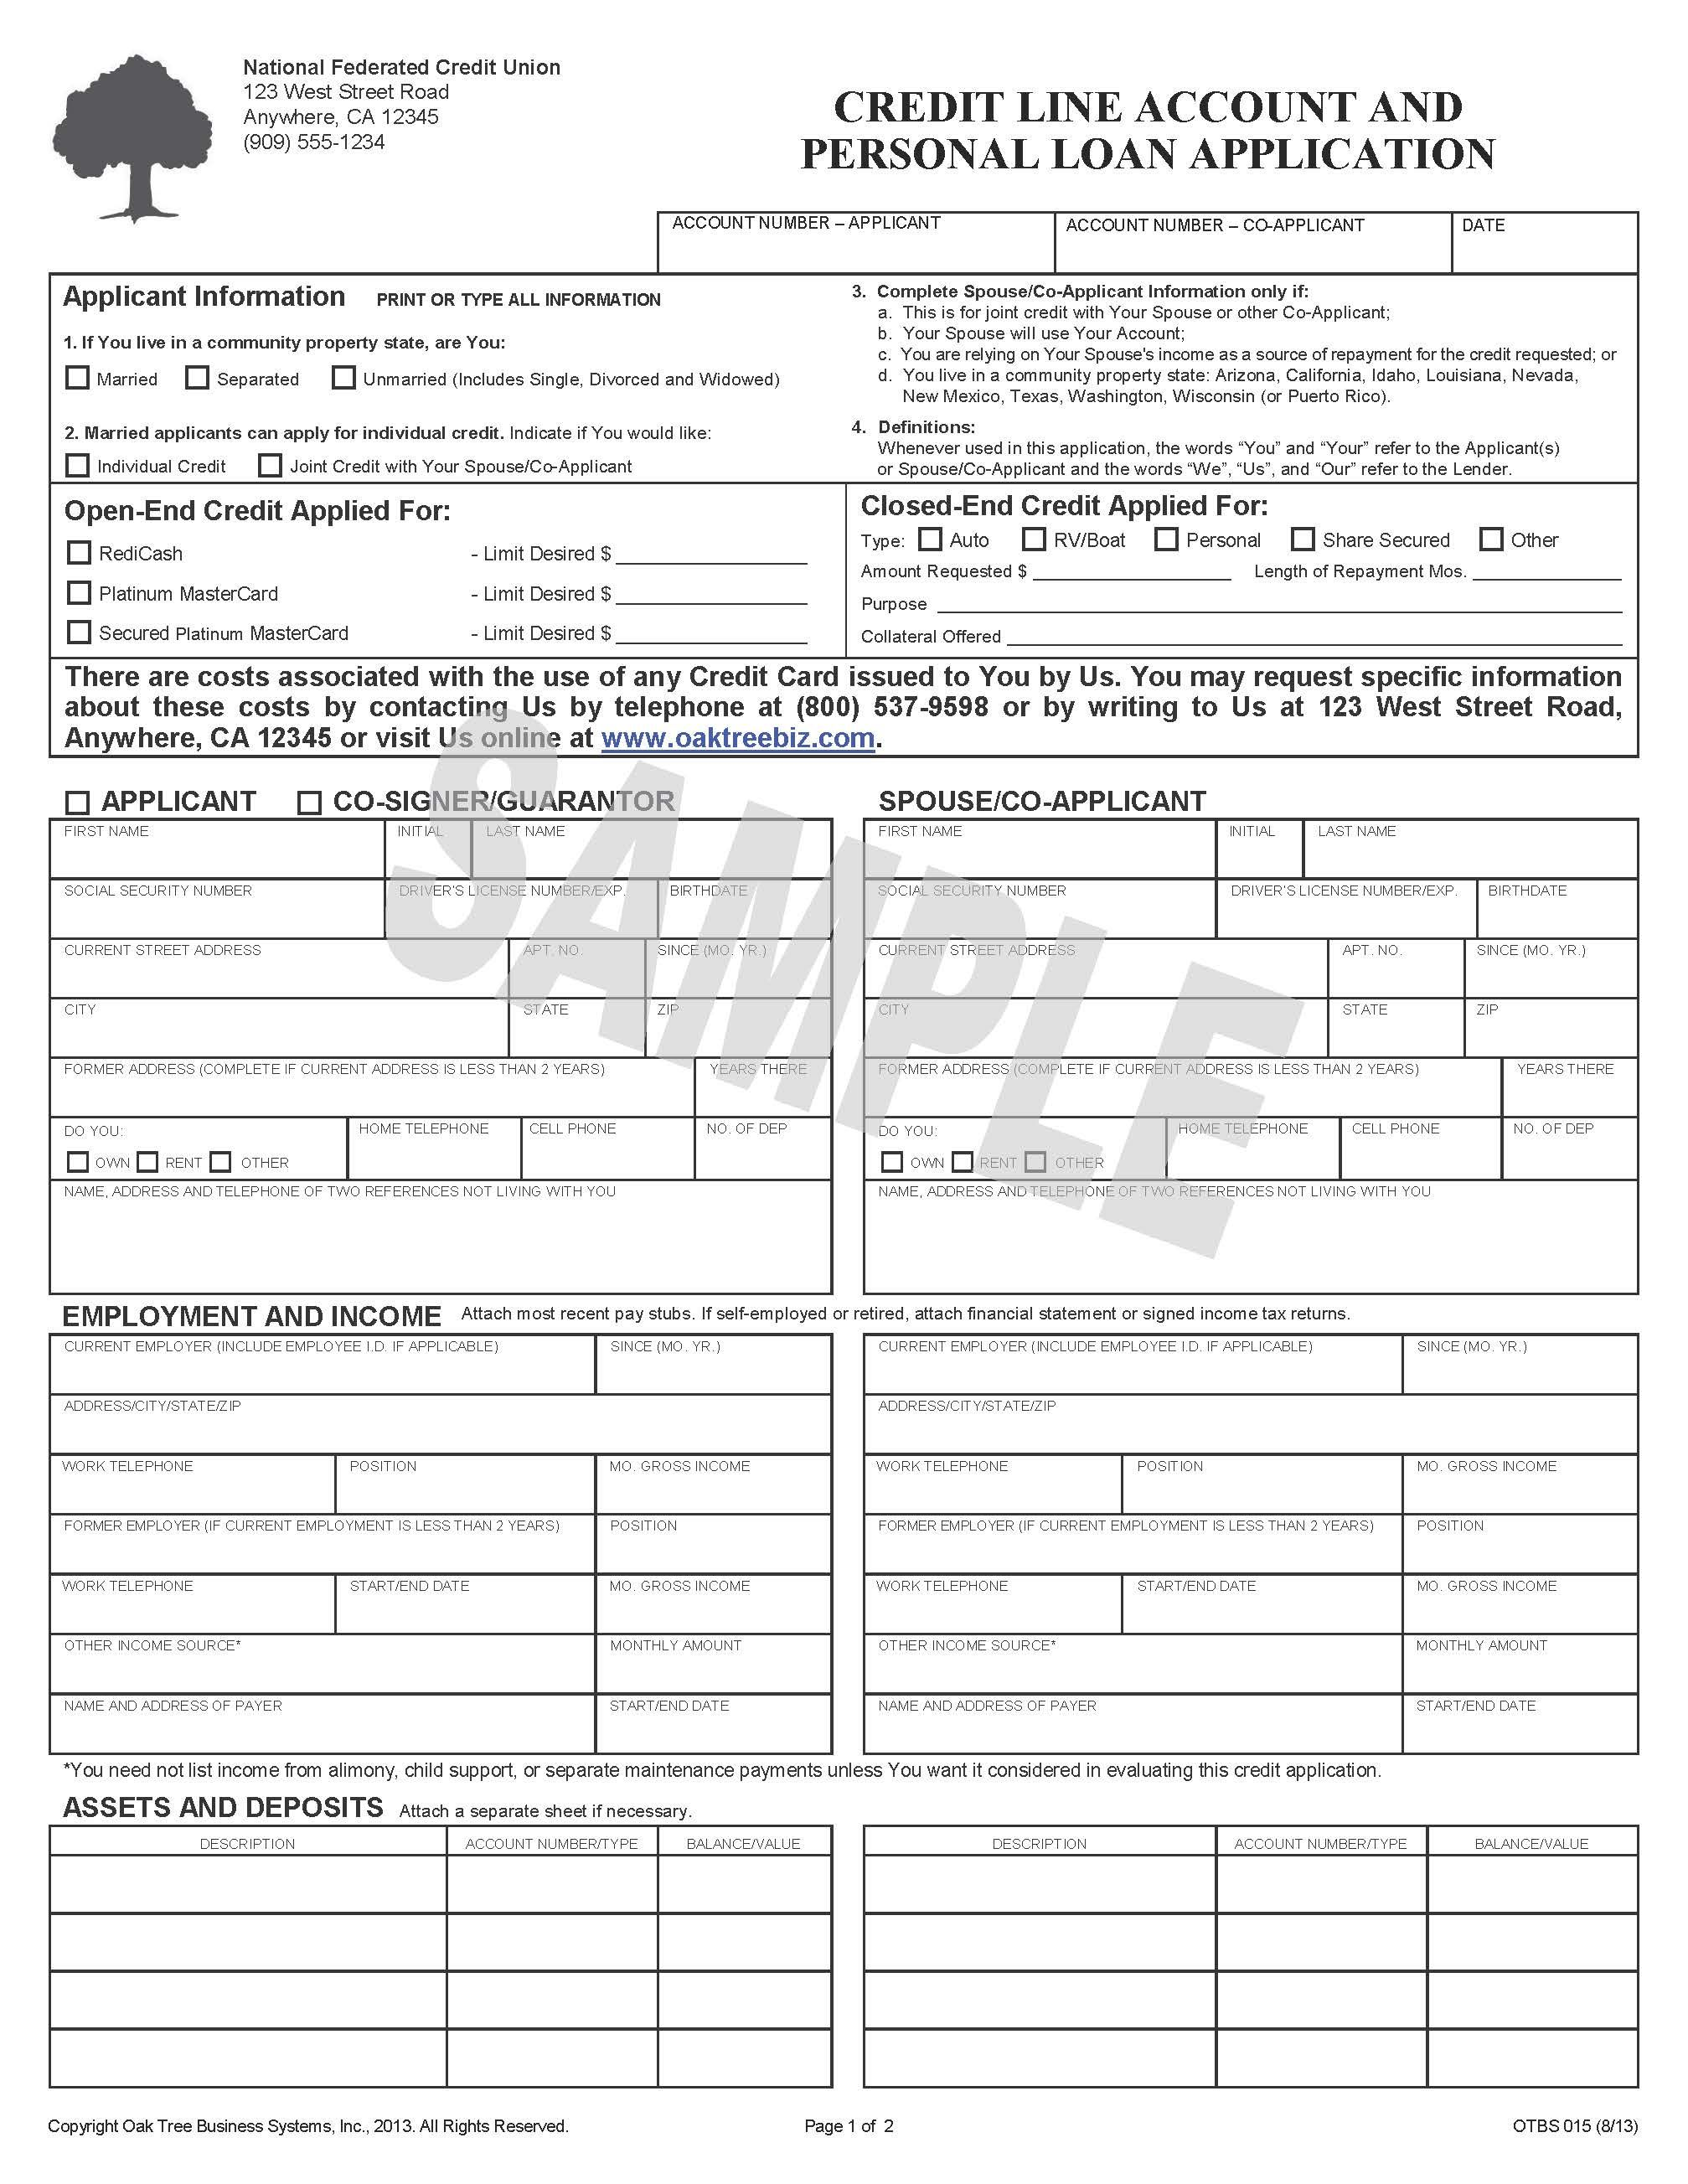 Consumer Loan Application Credit Union Form  Http://www.oaktreebiz.com/products Services/consumer Lending Forms  #oaktreeforms #credituniondocuments ...